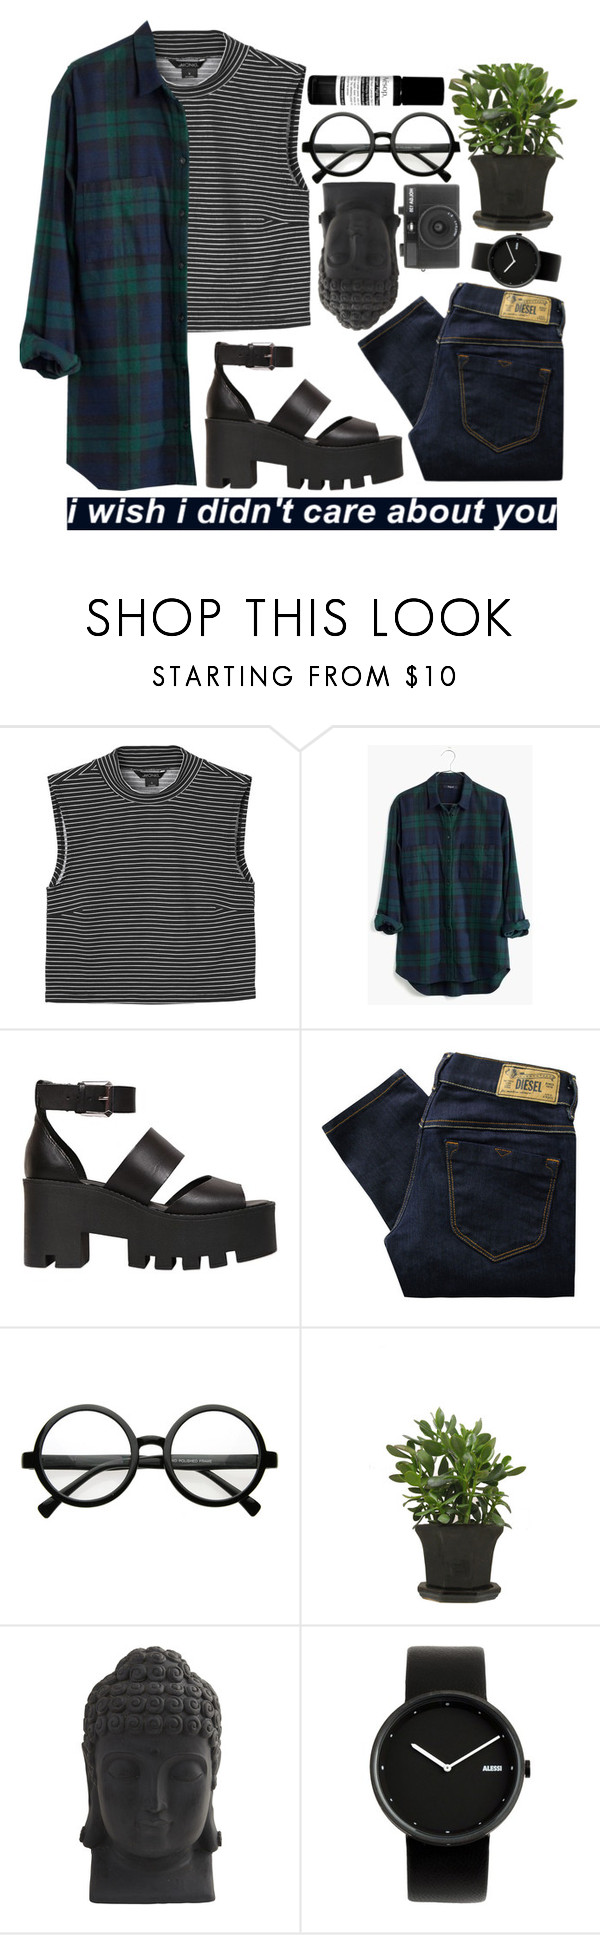 """Untitled #6"" by please-dear ❤ liked on Polyvore featuring Monki, Madewell, Windsor Smith, Diesel, Retrò, Nearly Natural, Holga, Alessi and Aesop"